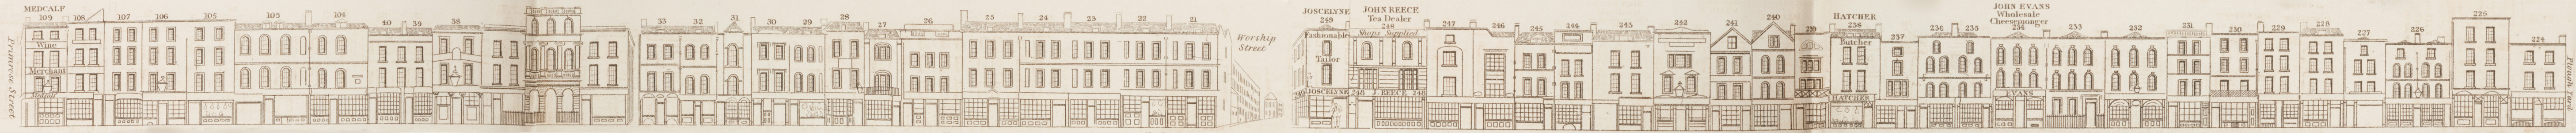 map - Tallis's London street views : No. 60. Norton Folgate and Shoreditch, division 1 (west)